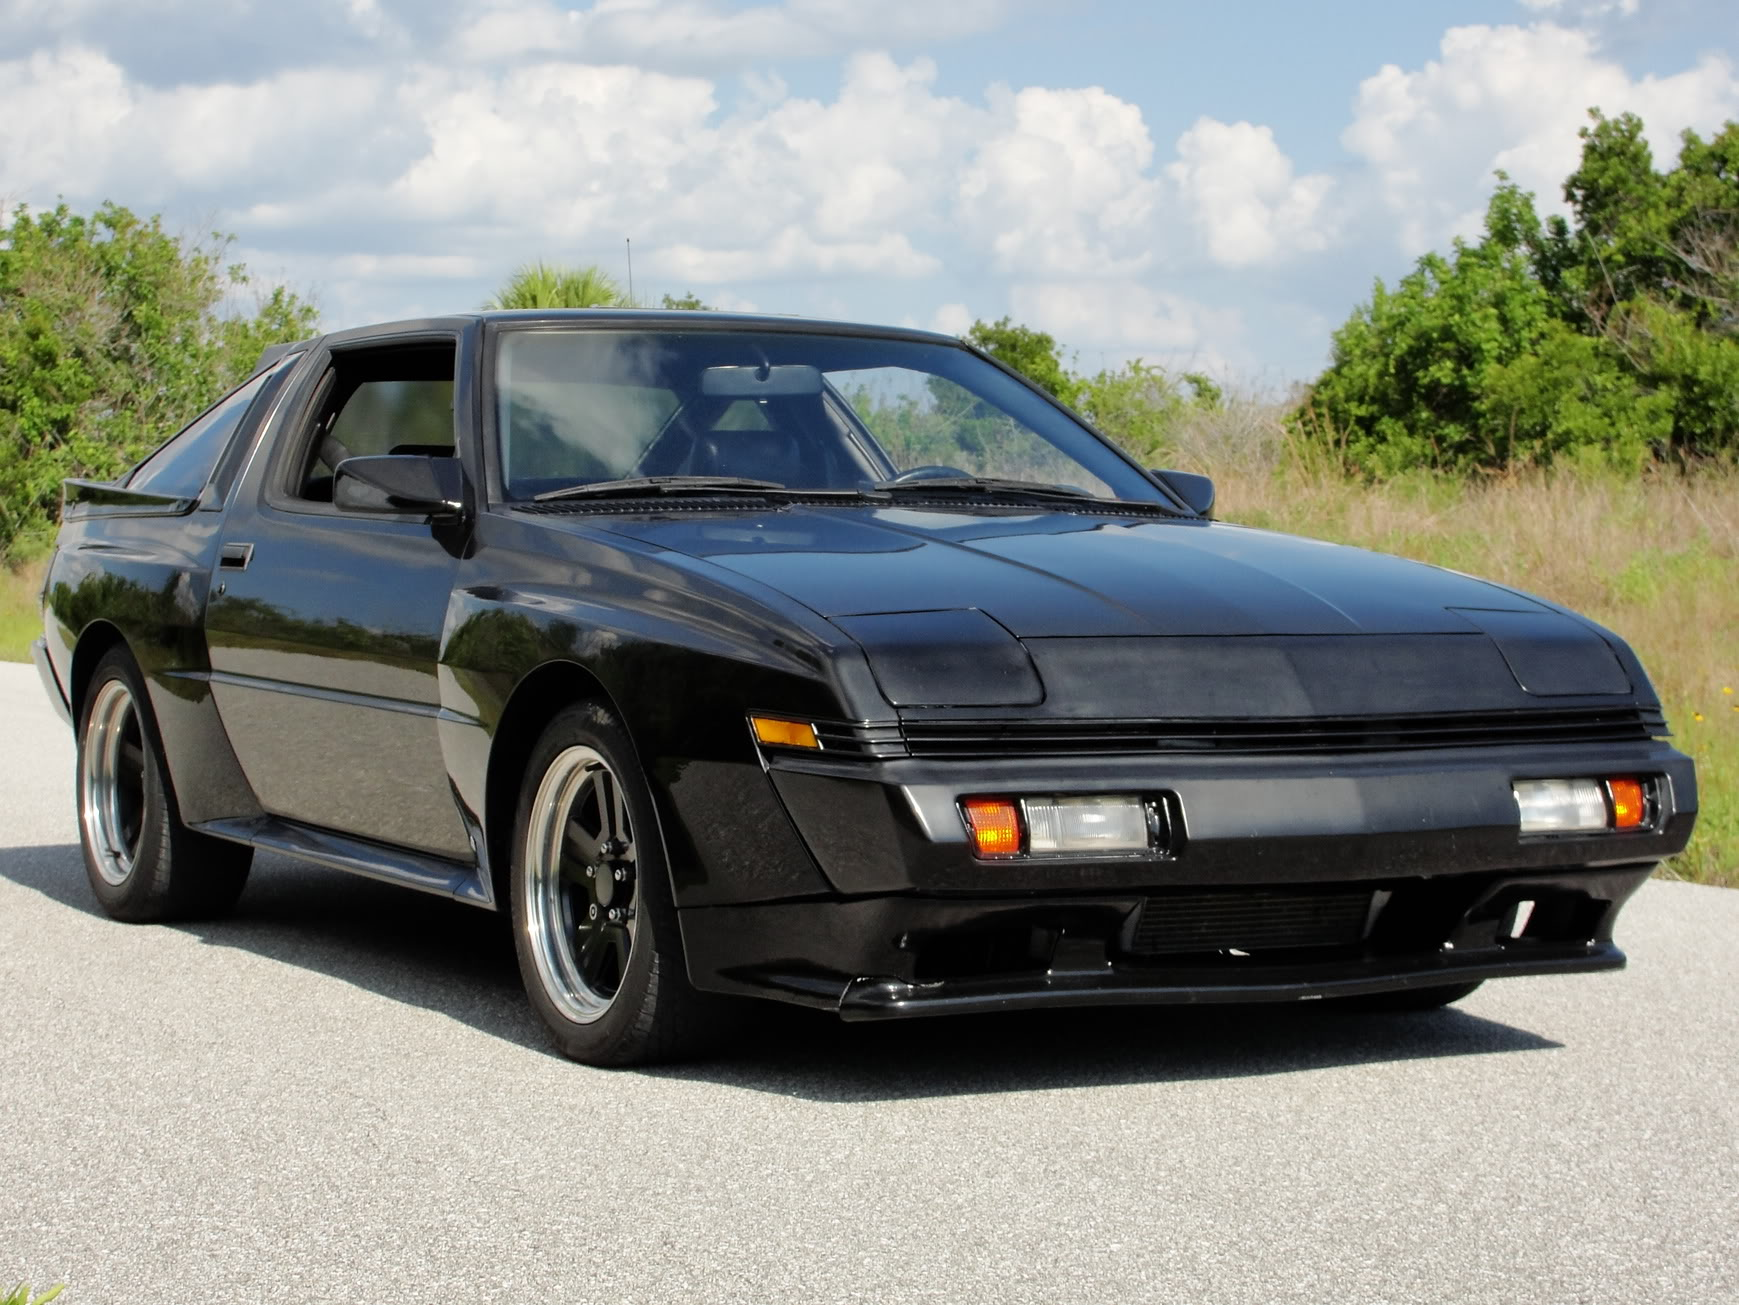 1986 Chrysler Conquest #6